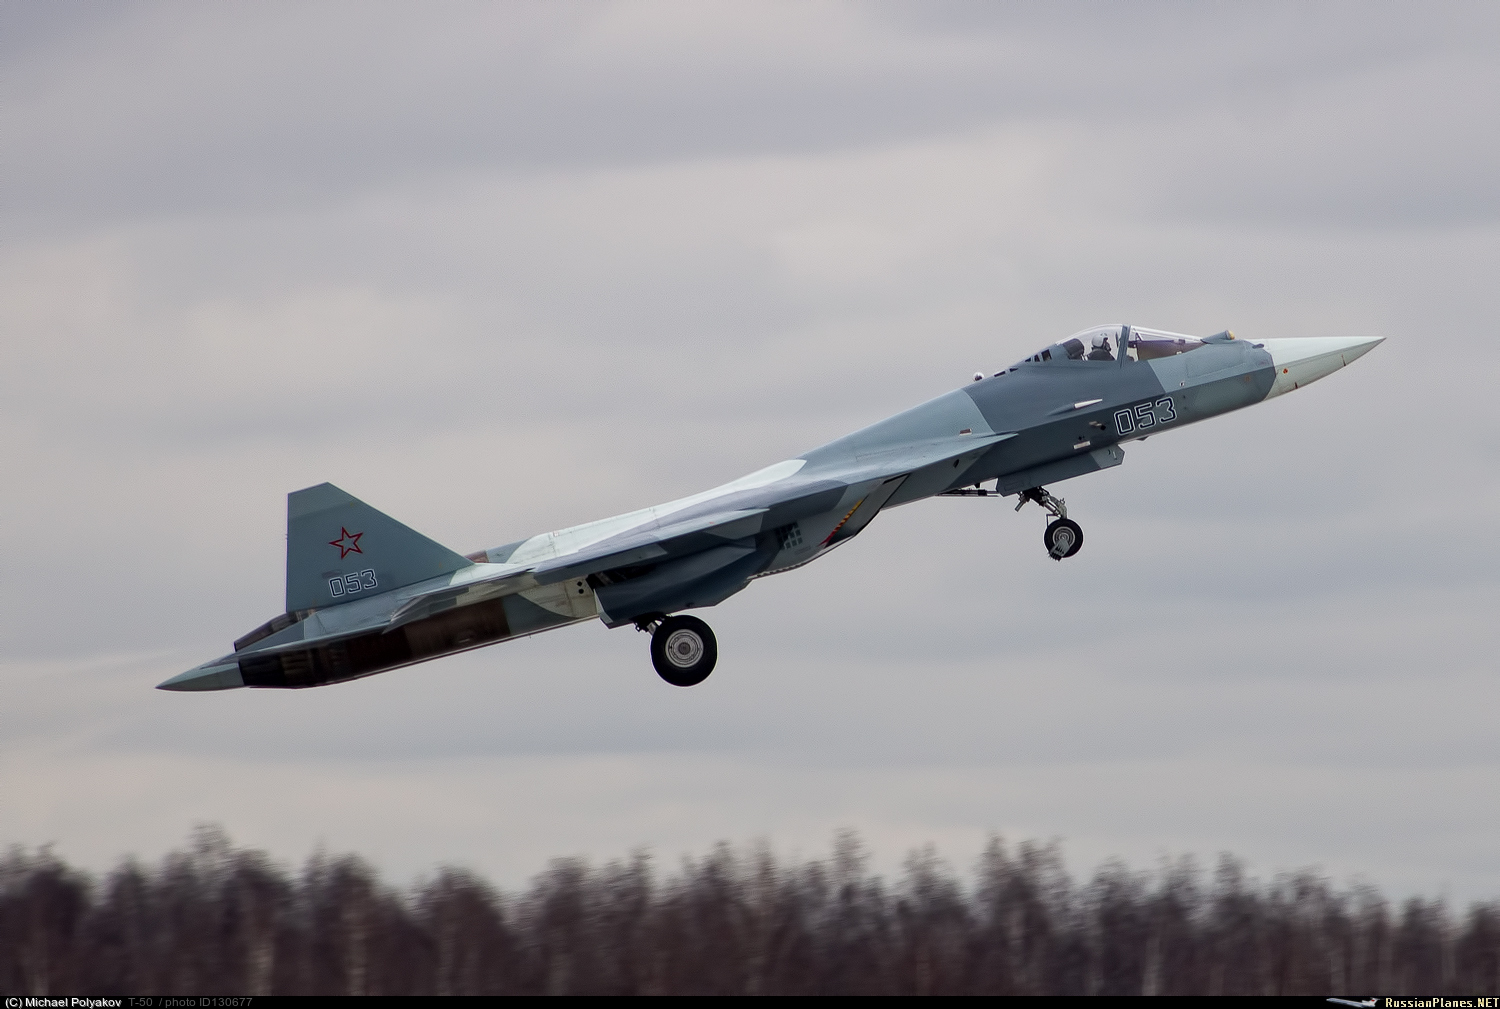 http://russianplanes.net/images/to131000/130677.jpg